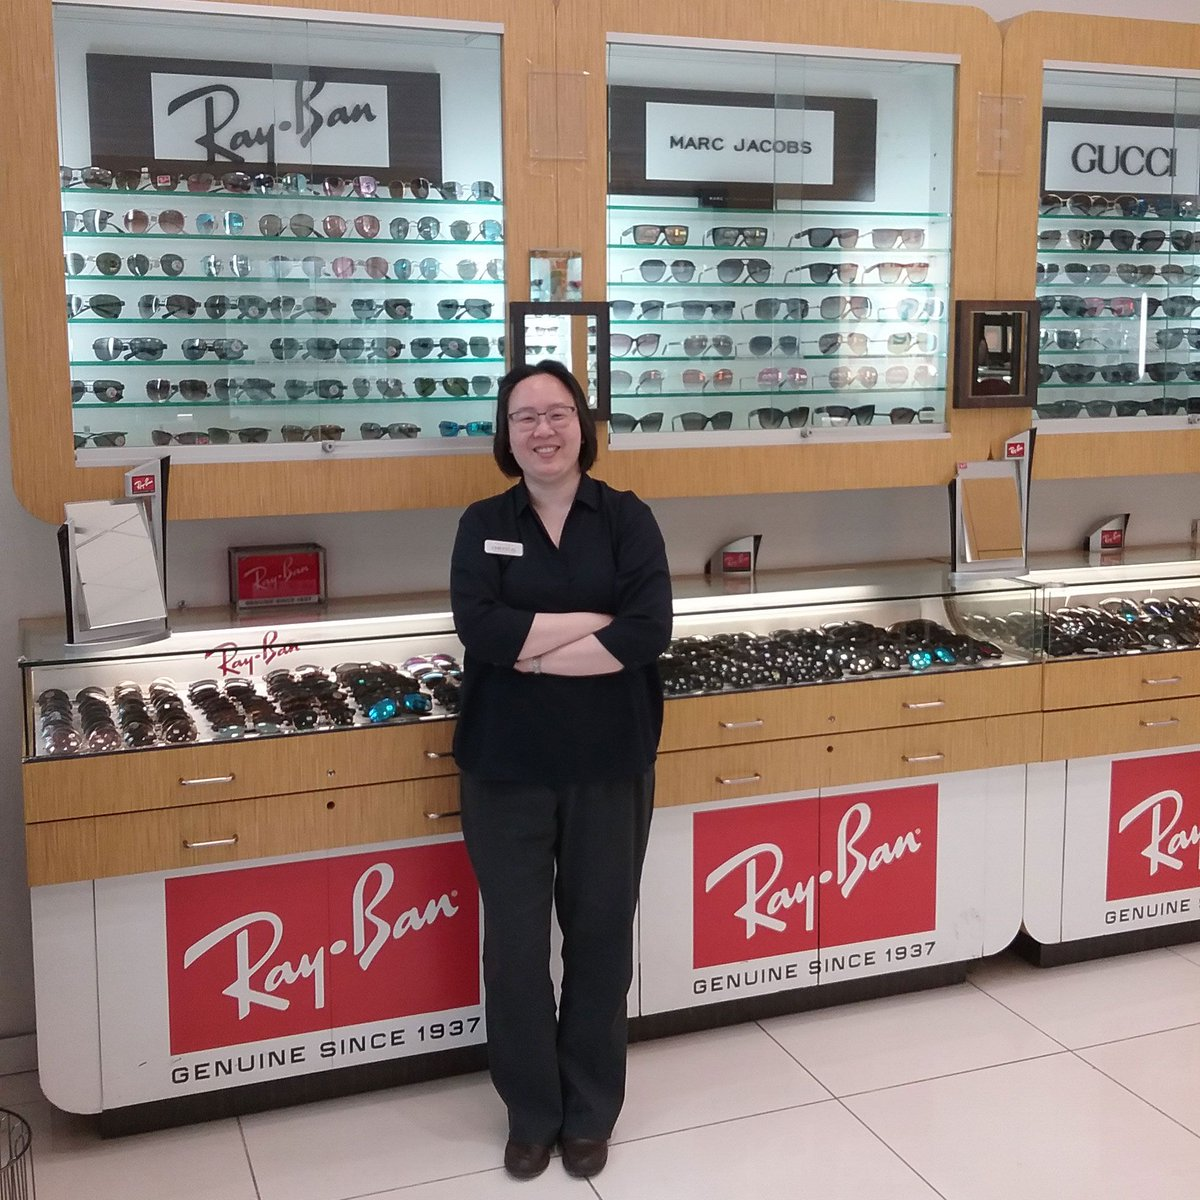 a10e637a2 ... frames and take advantage of the Ray-Ban Ambassador experience! #RayBan  #RobsonOptical #RayBanAmbassadors  #BrandSpecialistspic.twitter.com/qvYiDEQ0Yv